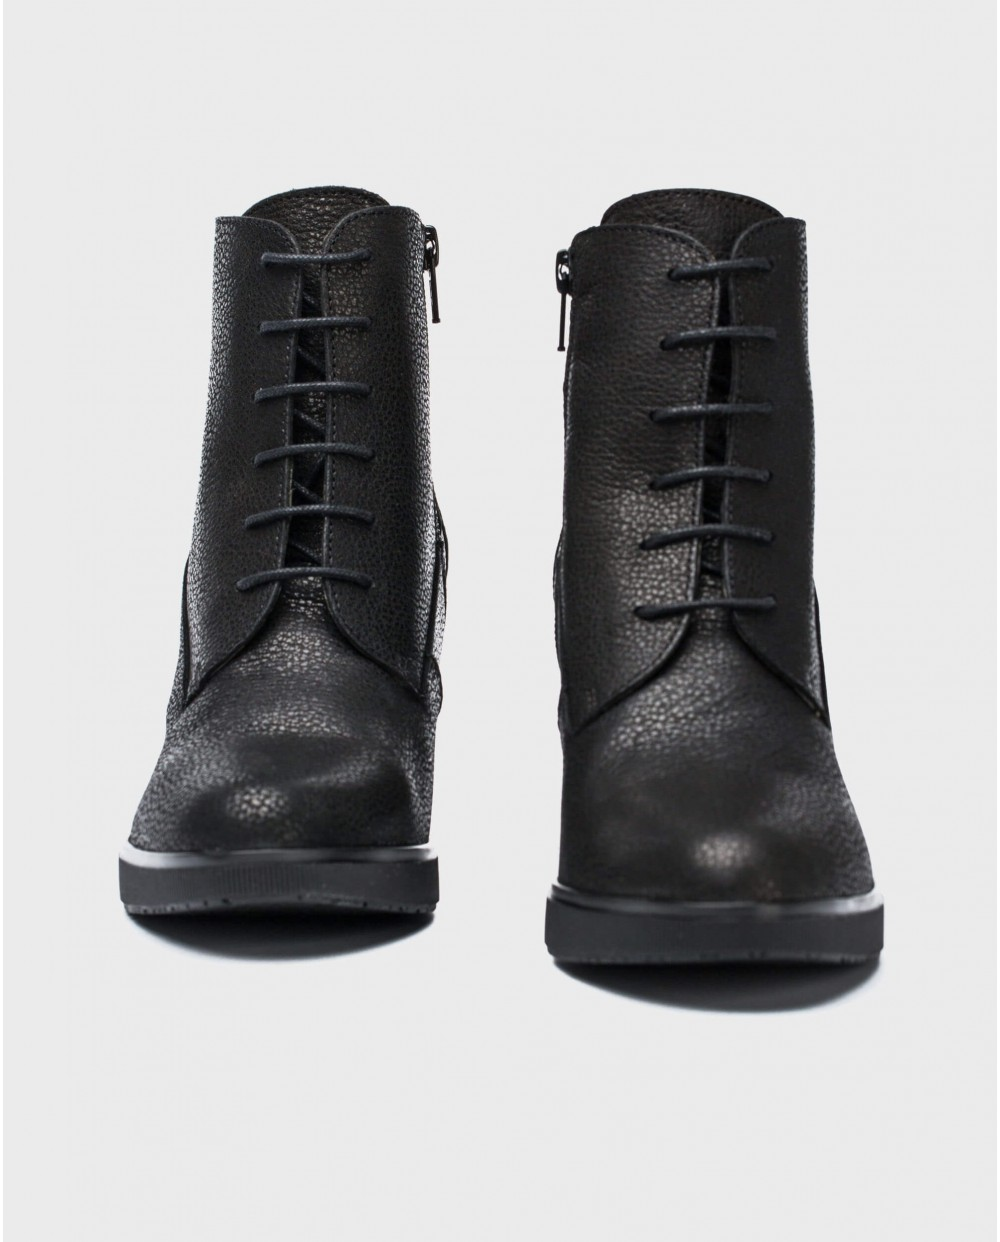 Wonders-Ankle Boots-Pebble leather ankle boot